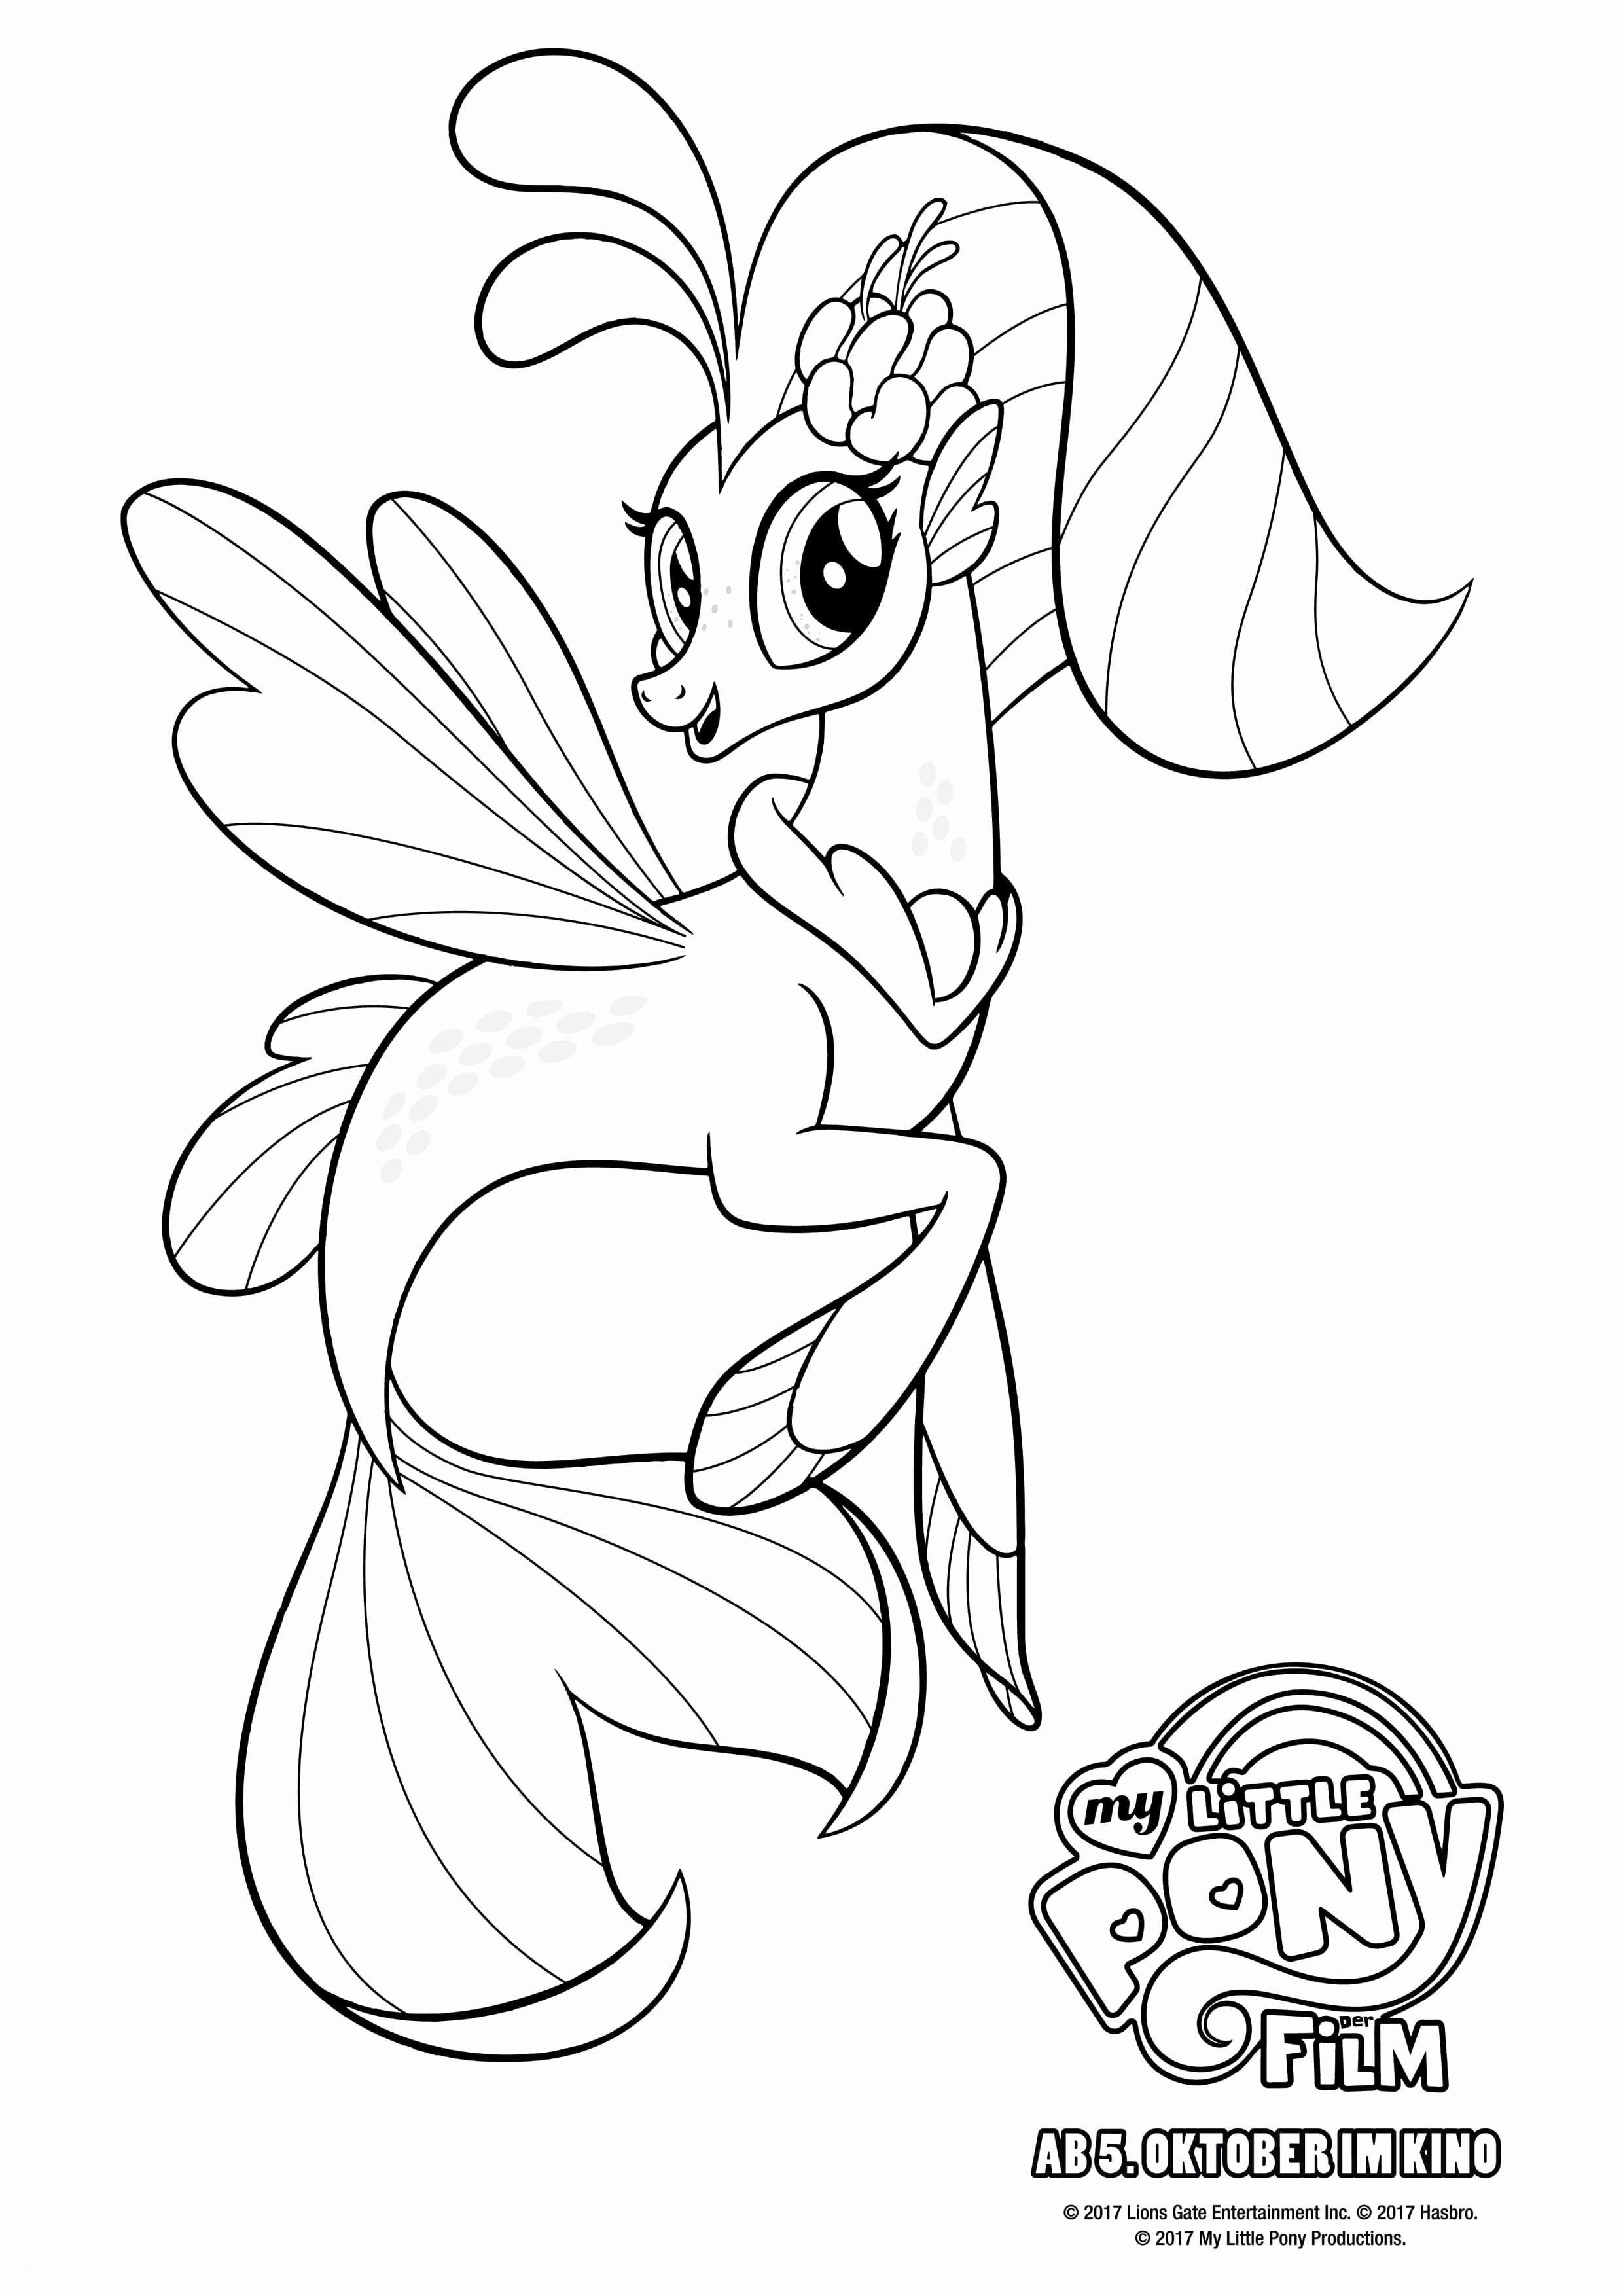 drawing mlp characters mlp fim pony base by xotrideviantartcom on deviantart mlp characters drawing